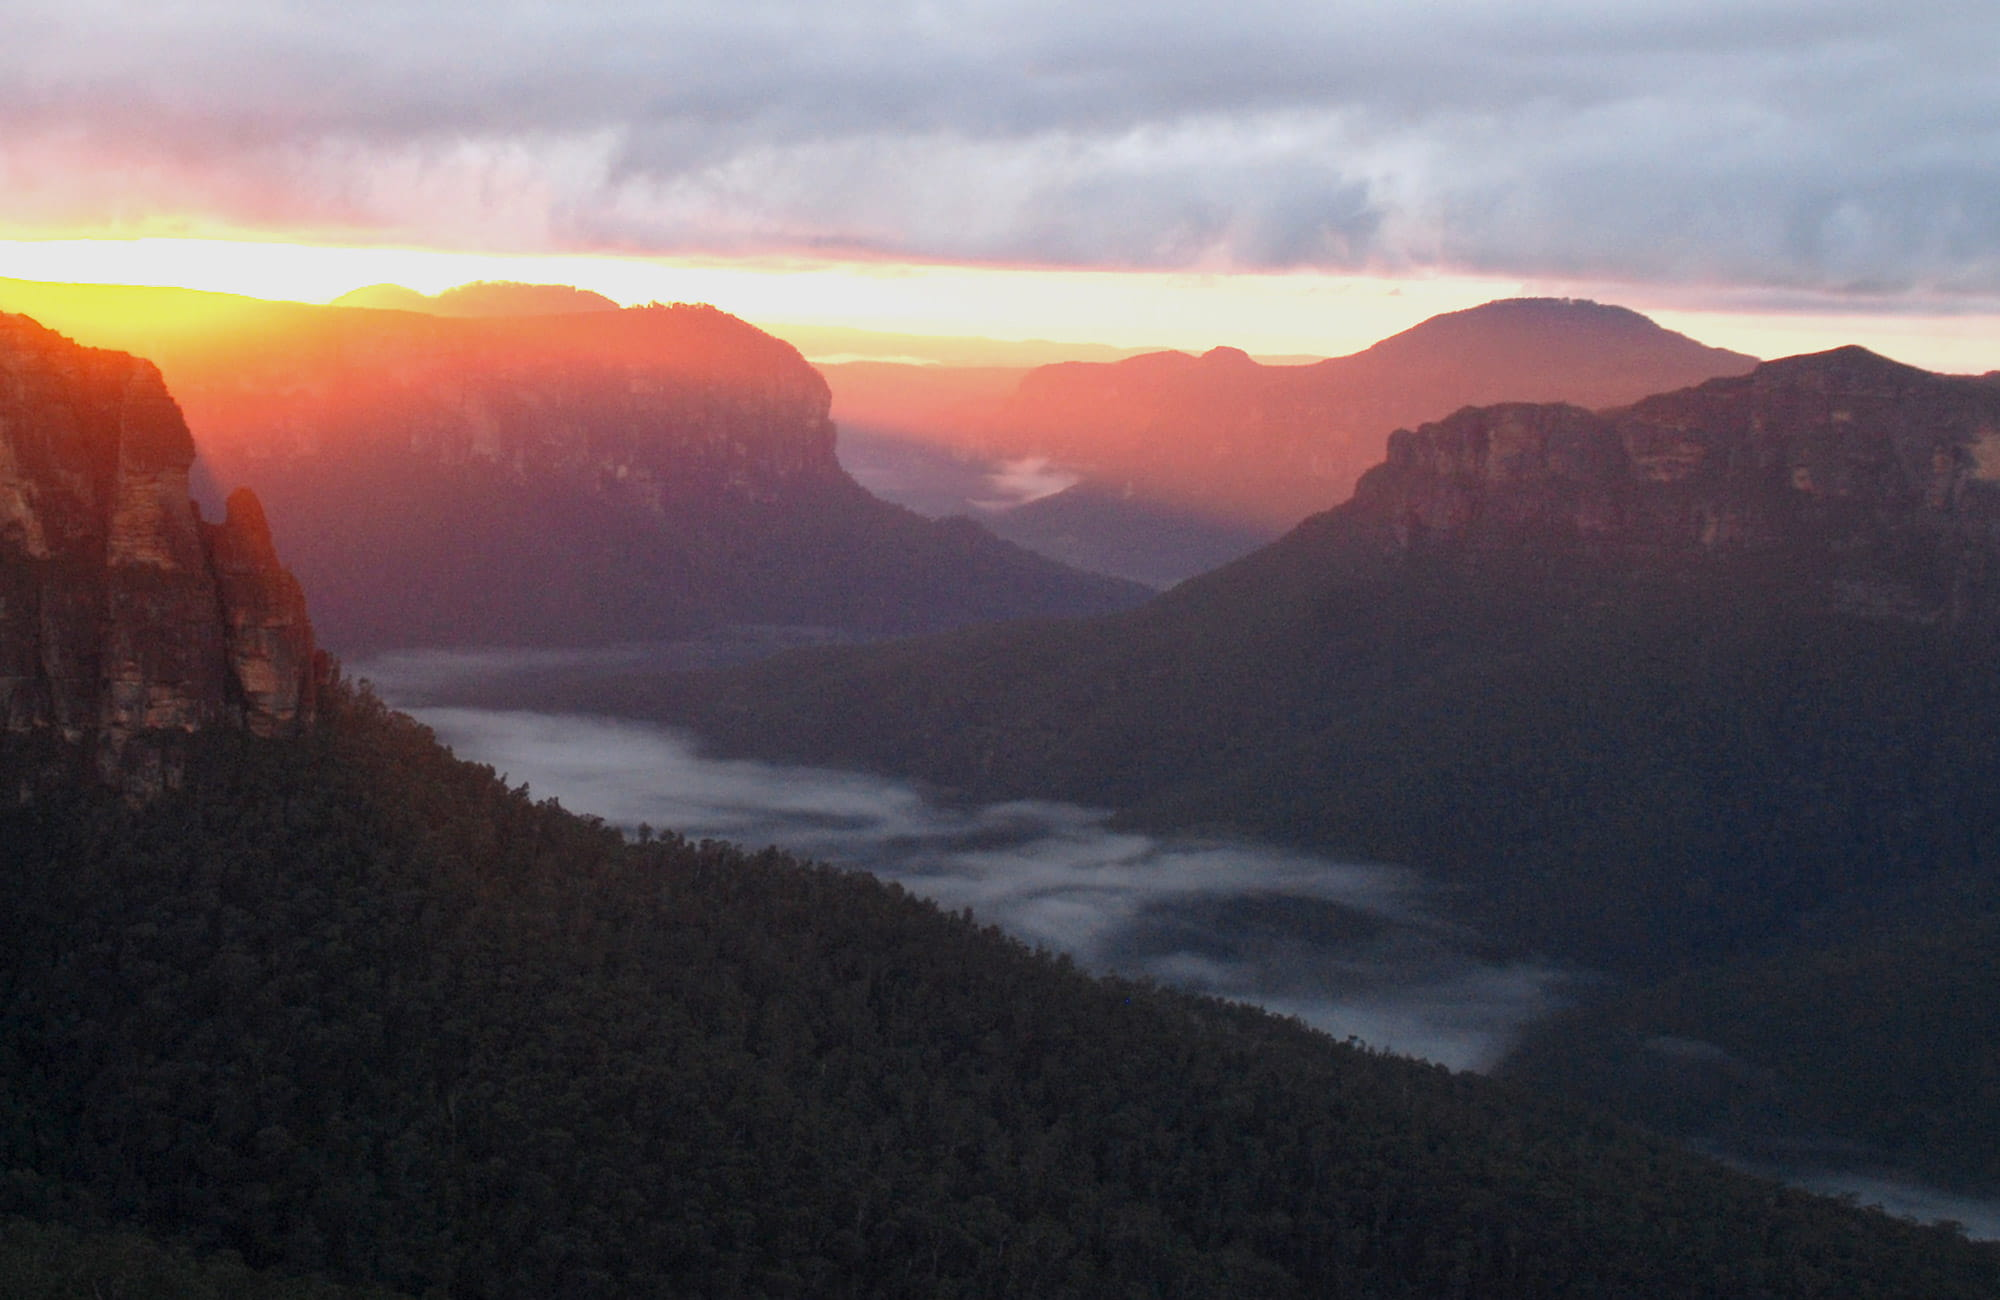 Dawn over Pulpit Rock and Grose Valley, seen from Govetts Leap, Blue Mountains National Park. Photo: Steve Alton/OEH